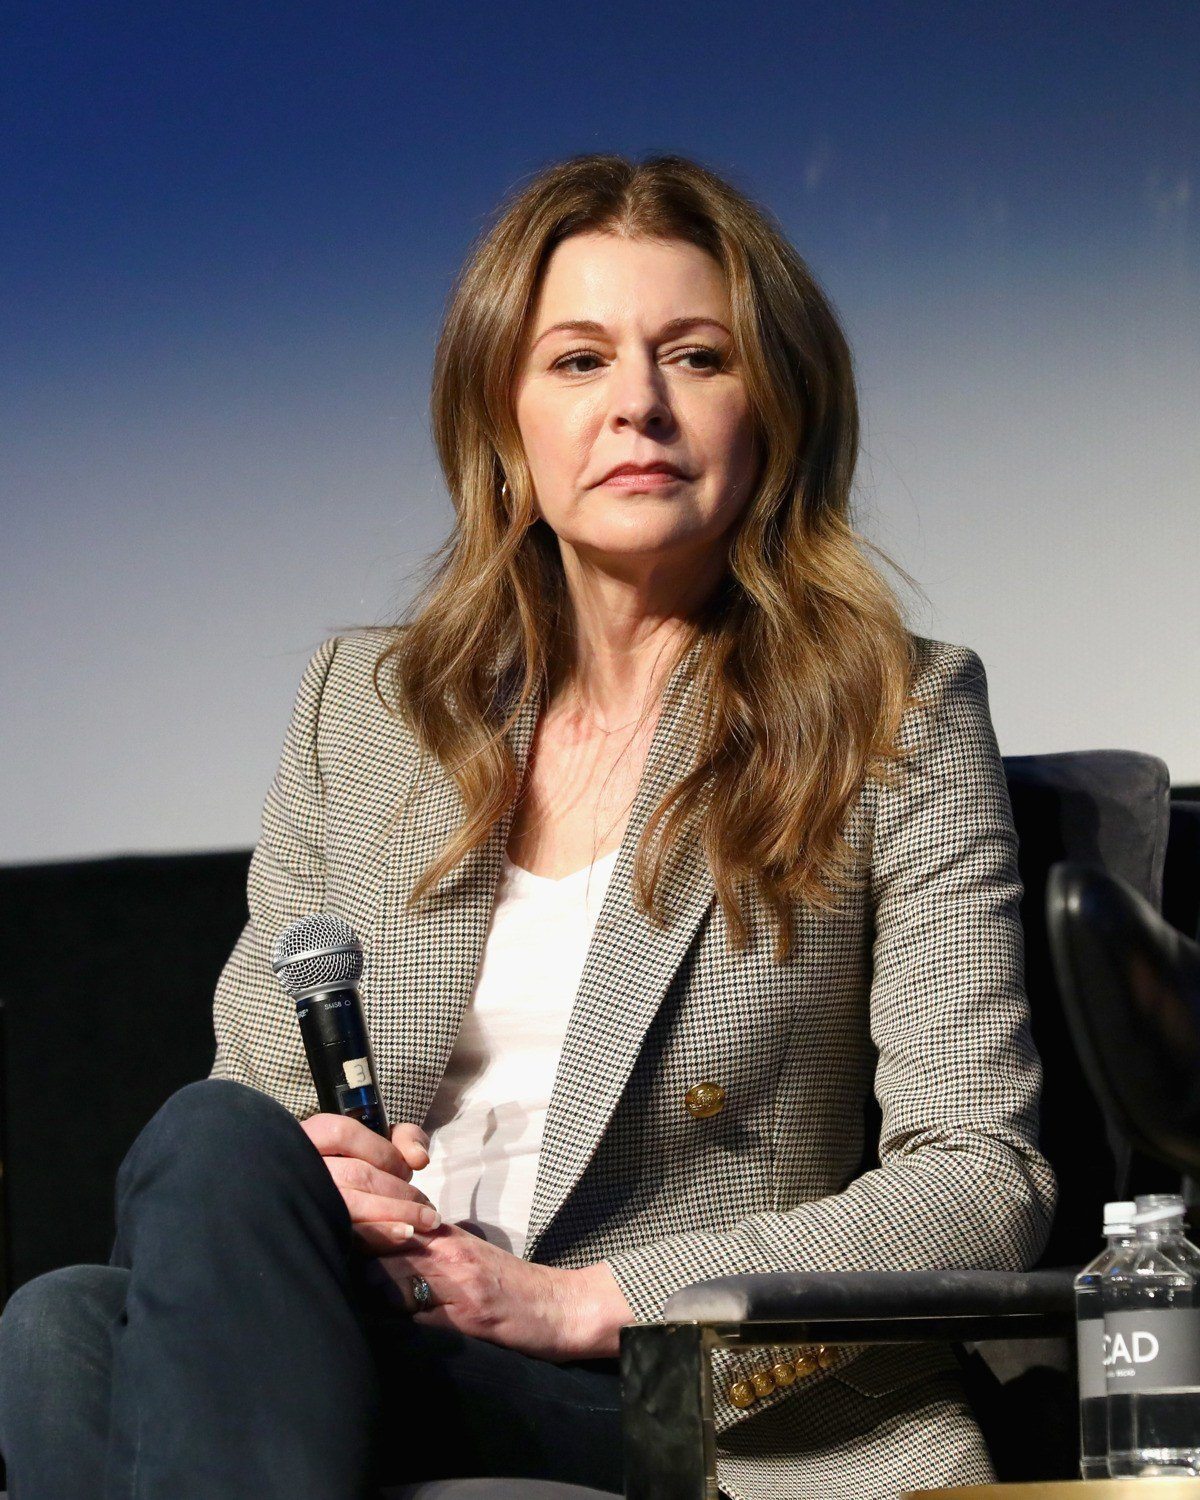 Janes Leeves at SCAD aTVfest in 2019 The Resident screening